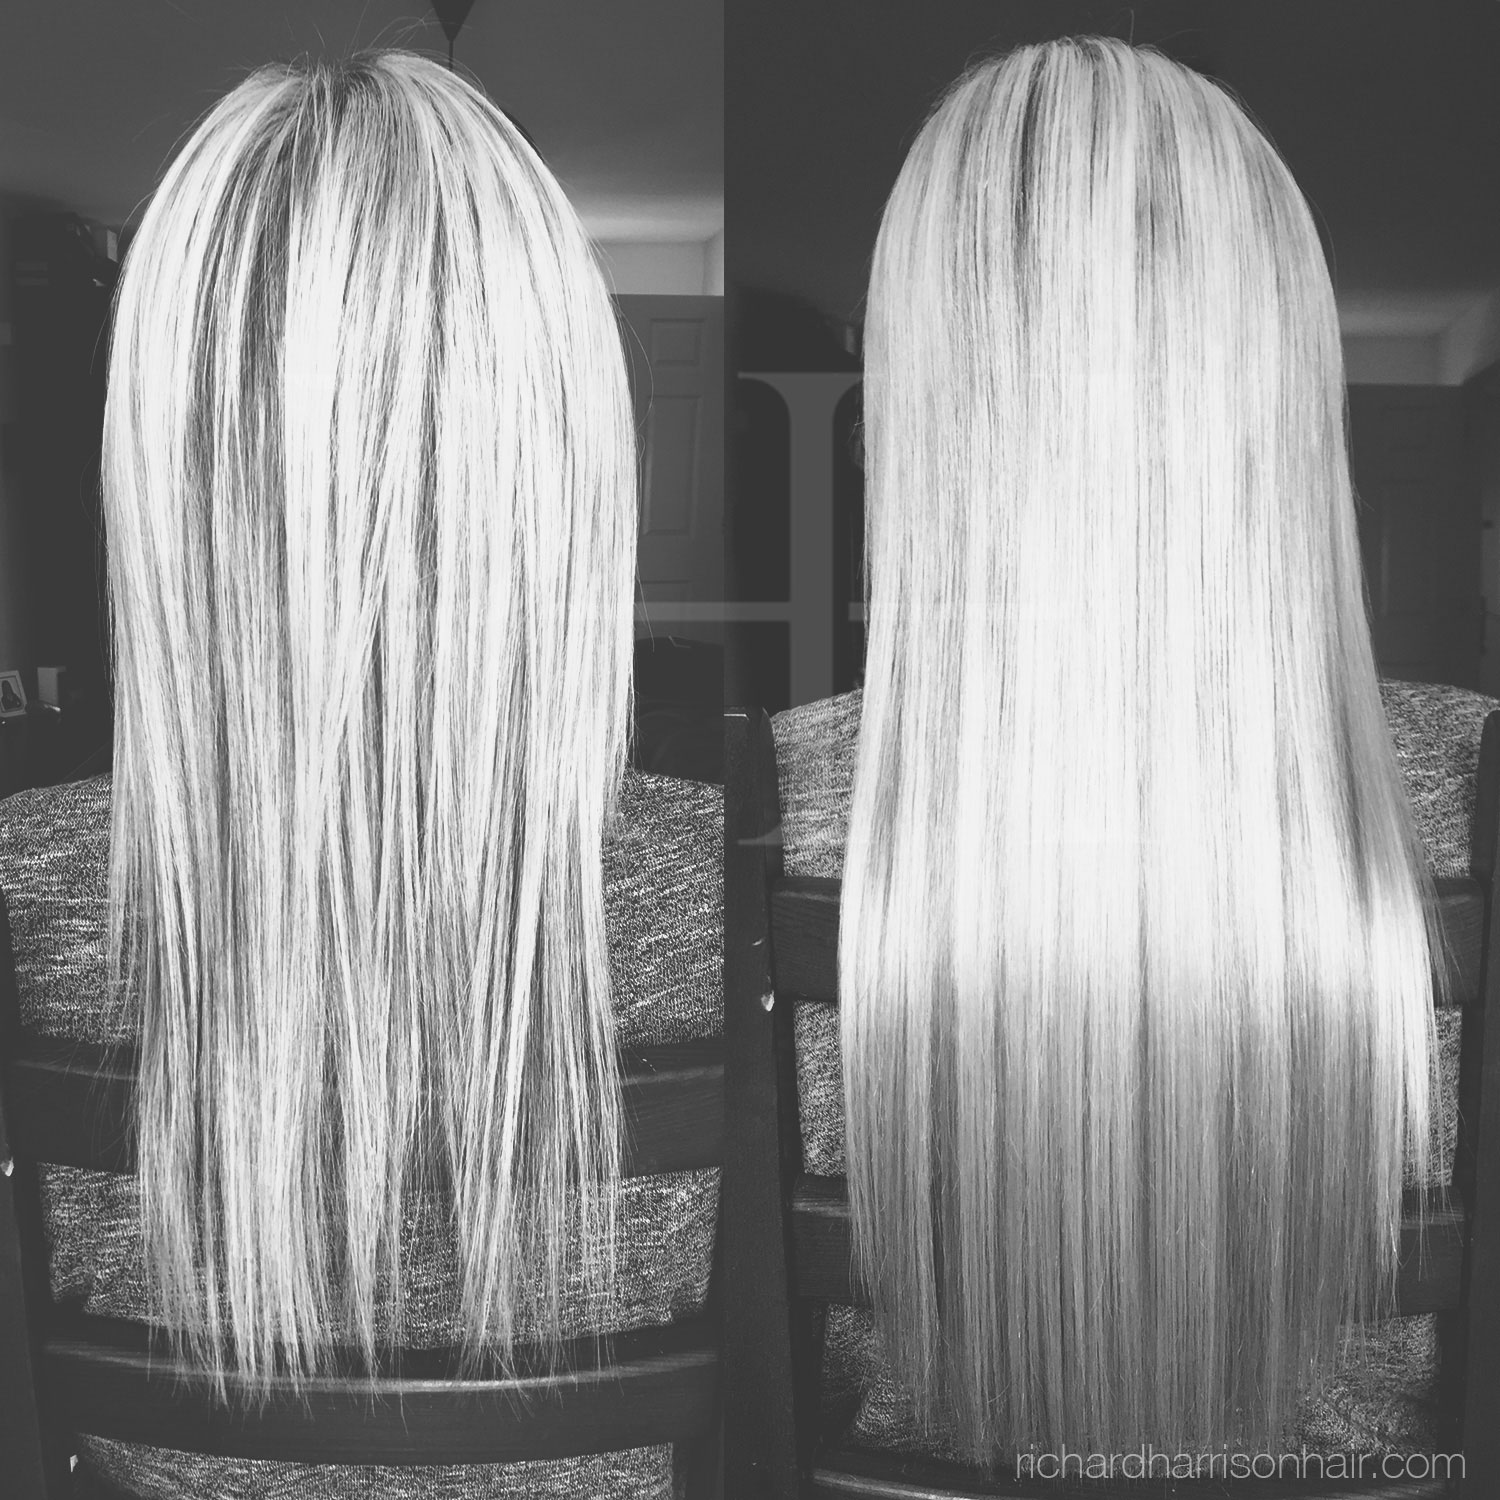 250 Blonde Hair Extensions